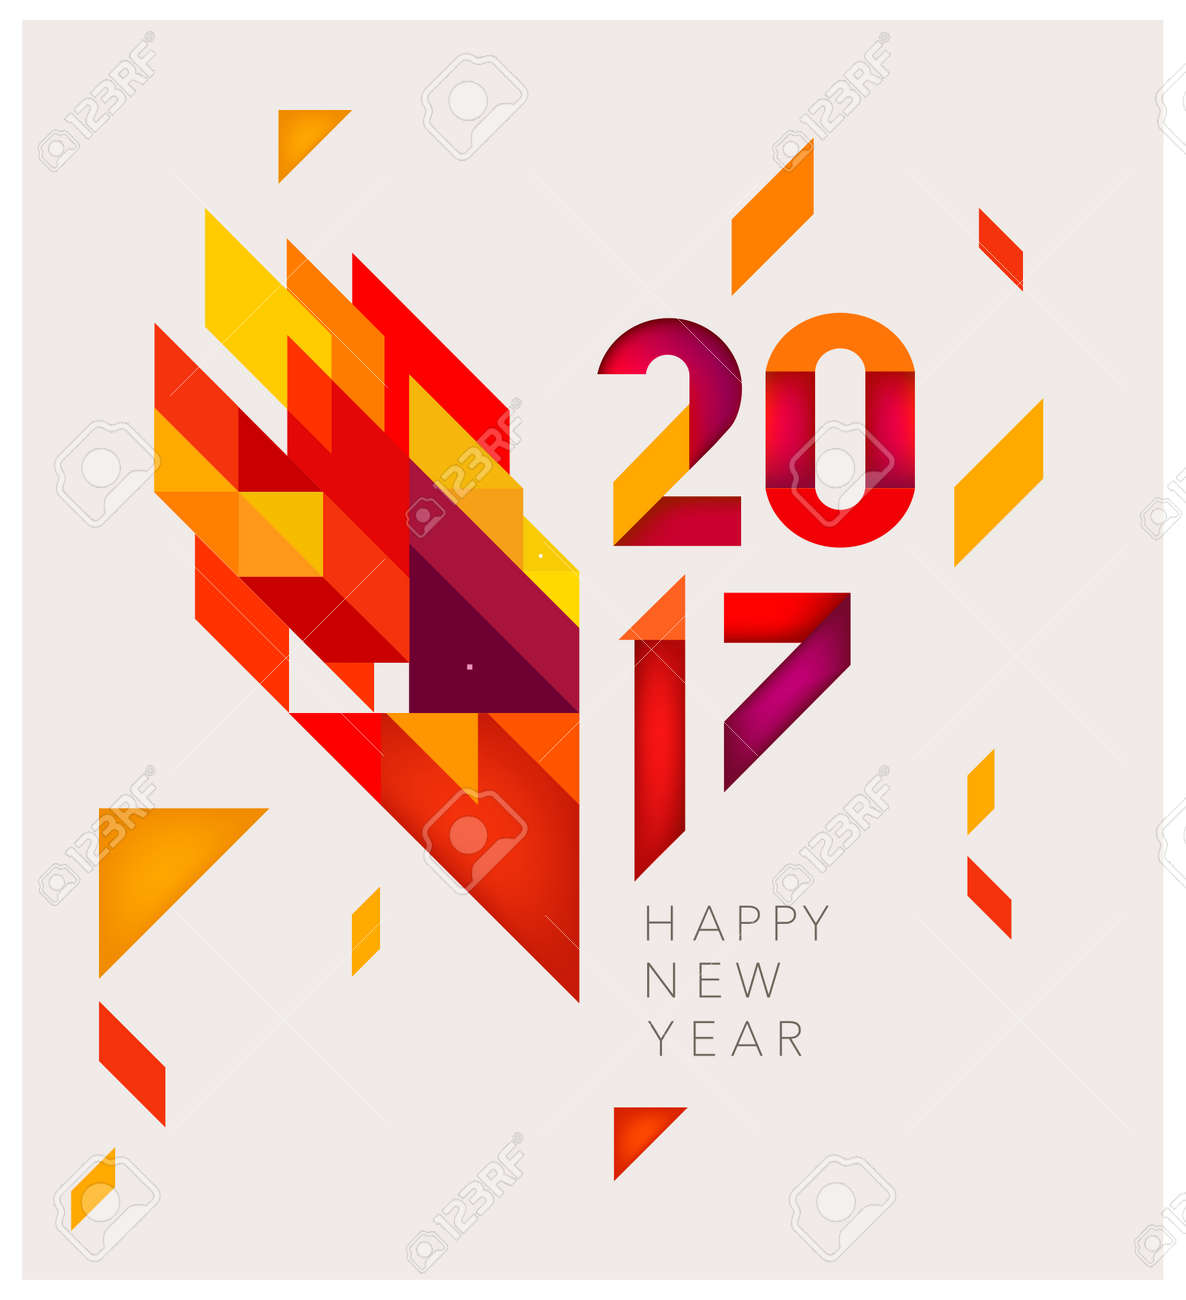 Minimalistic Vector abstract background. Red and yellow geometric shapes. New Year 2017. To design a calendar, postcards, flyers and other Christmas products. EPS 10 - 68882467